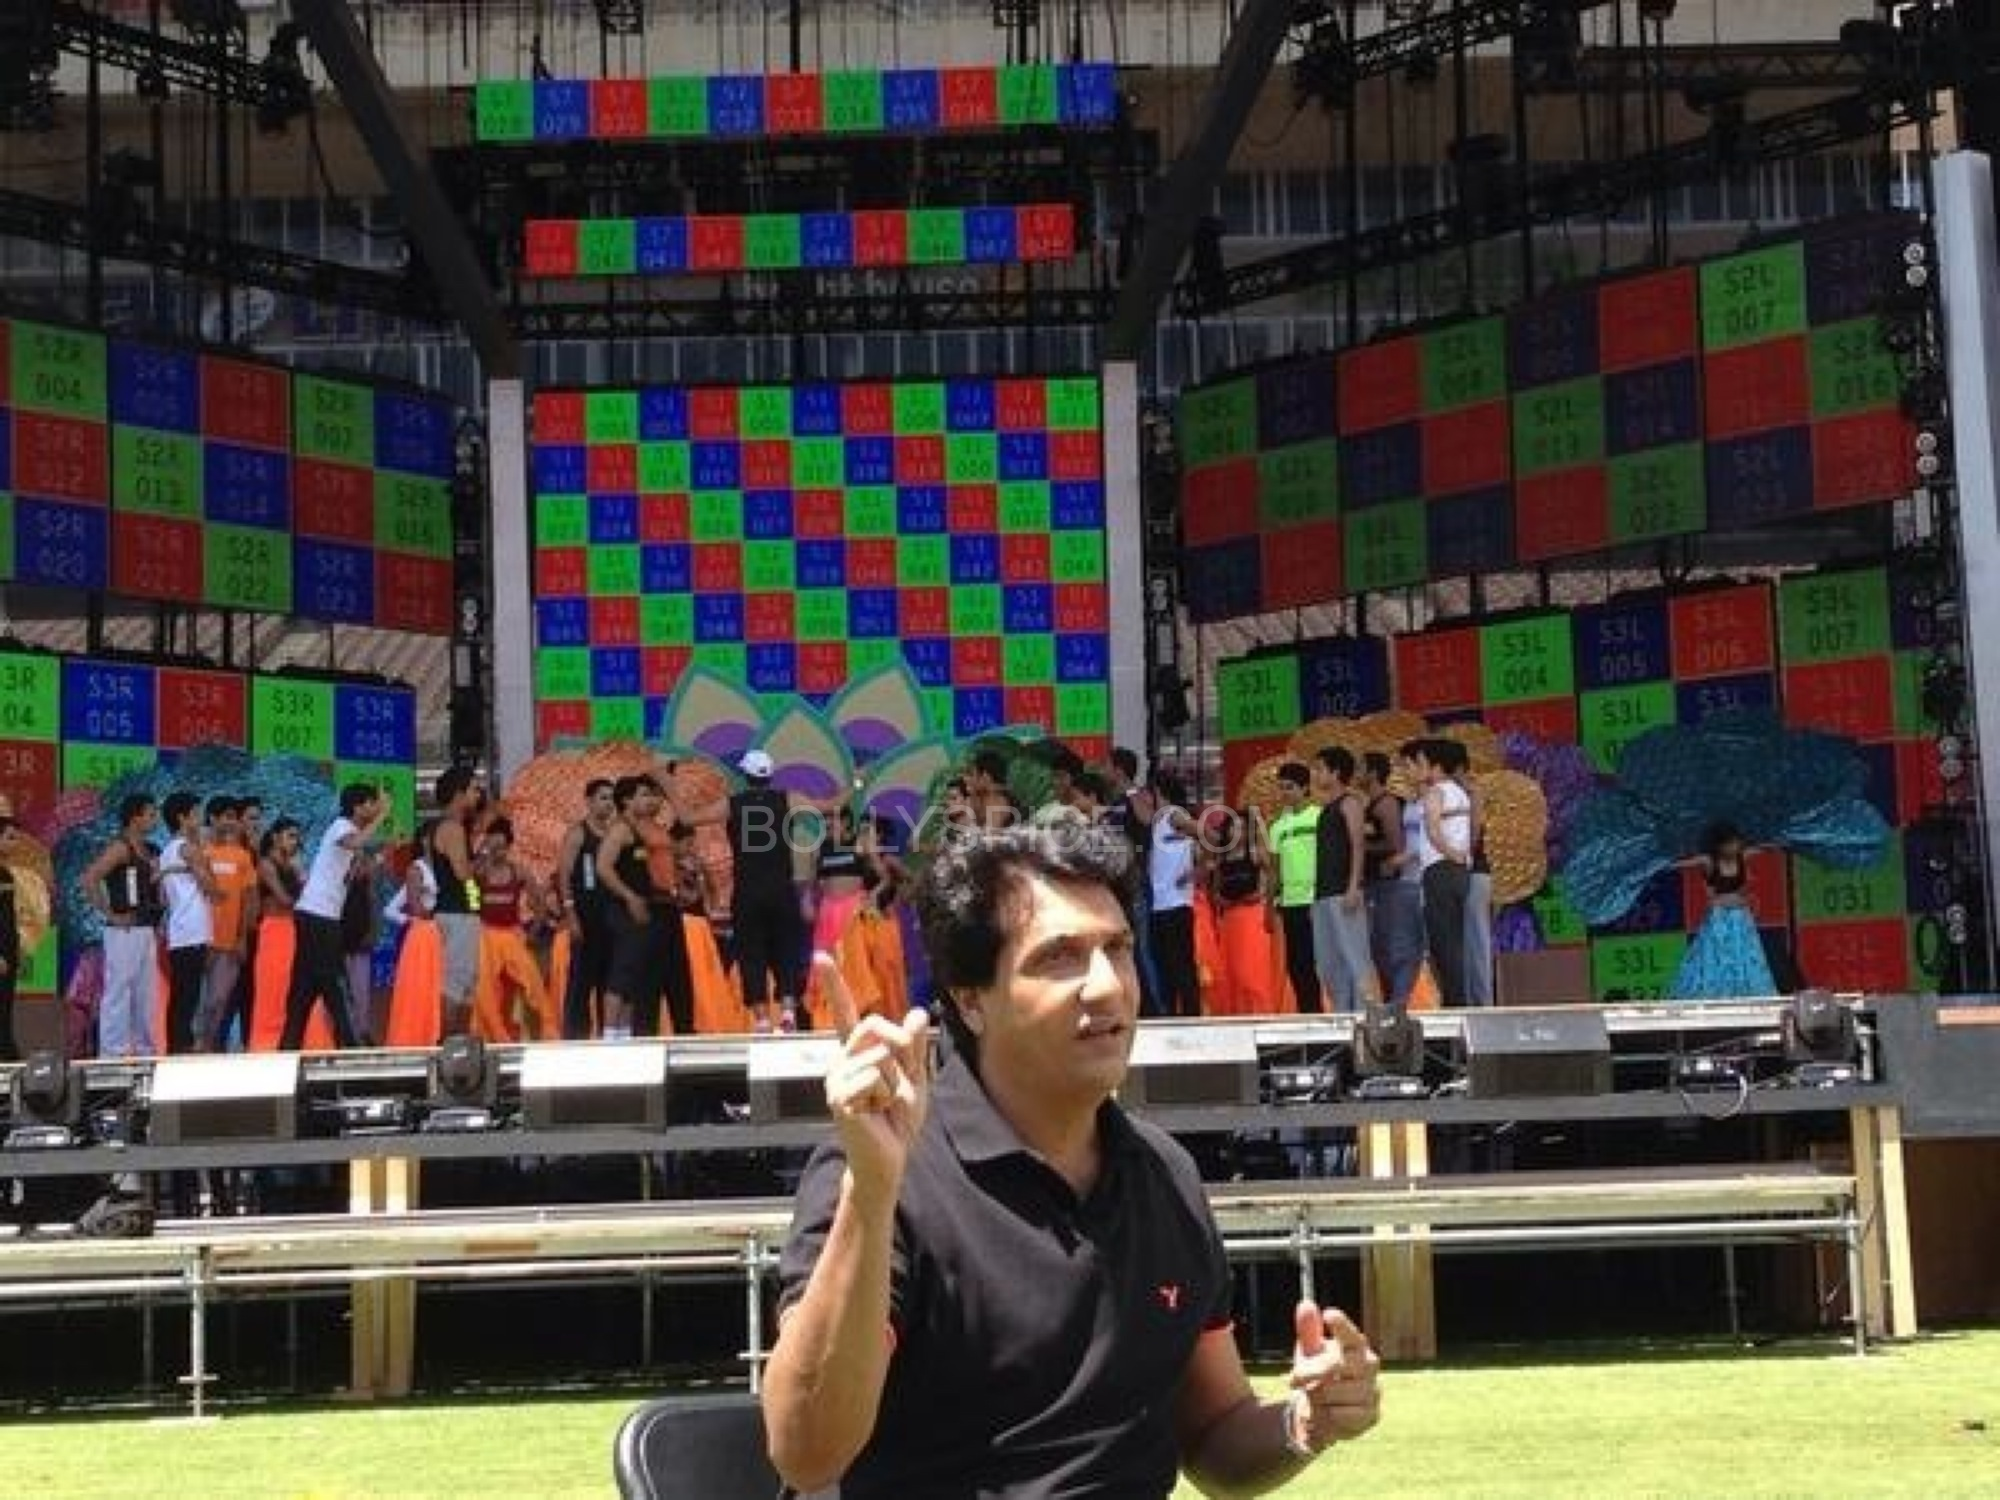 iifashiamakrehearsal Shiamak Davar gives us the scoop as he is ready to Rock at IIFA with performances by Hrithik, Shahid, Madhuri, Deepika, Ranveer and Siddharth